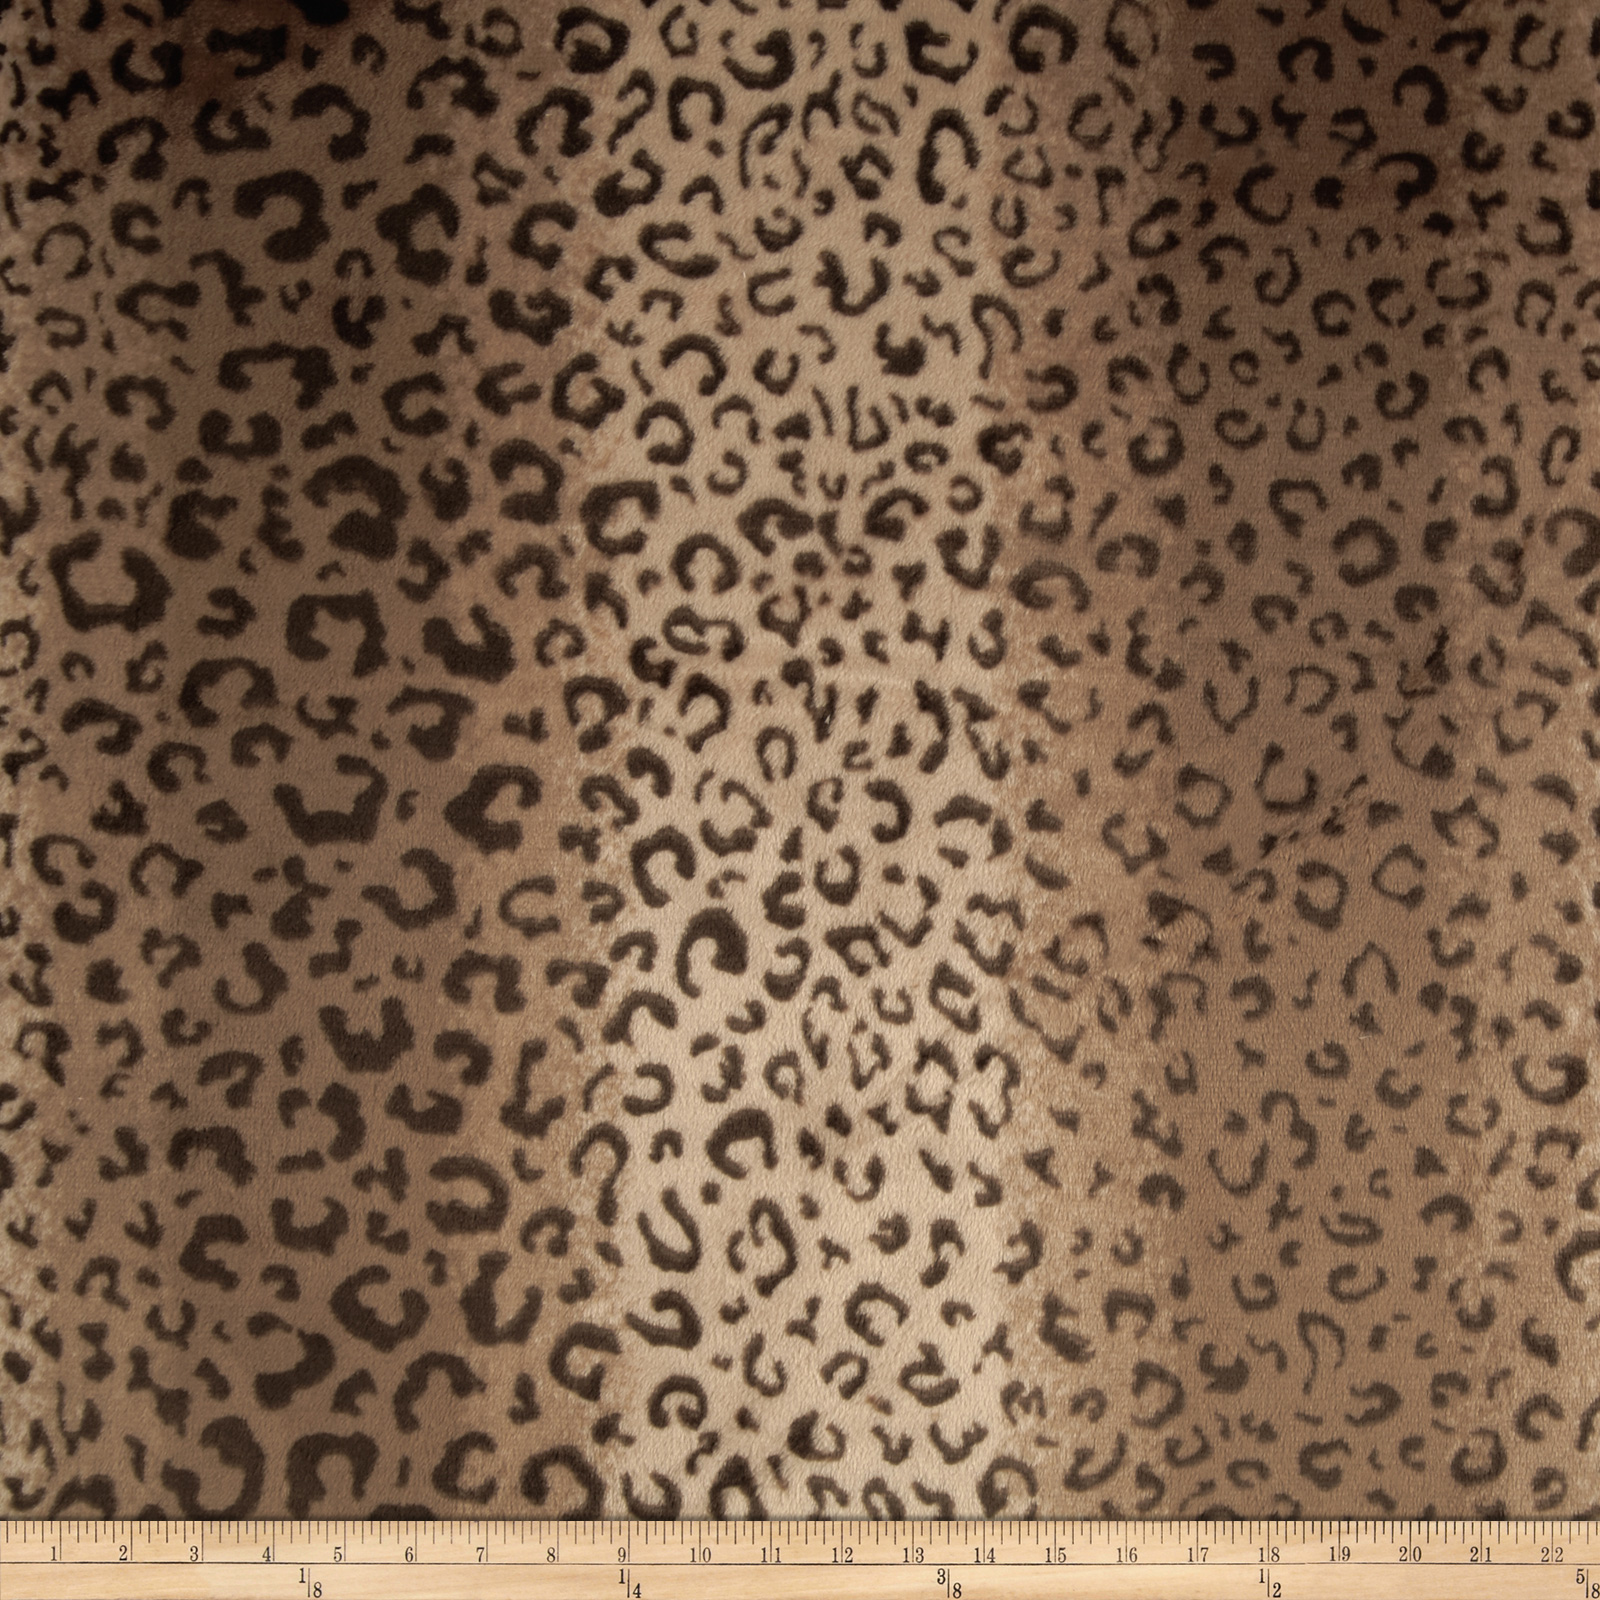 Minky Cuddle Spa Cheetah Print Brown/Tan Fabric